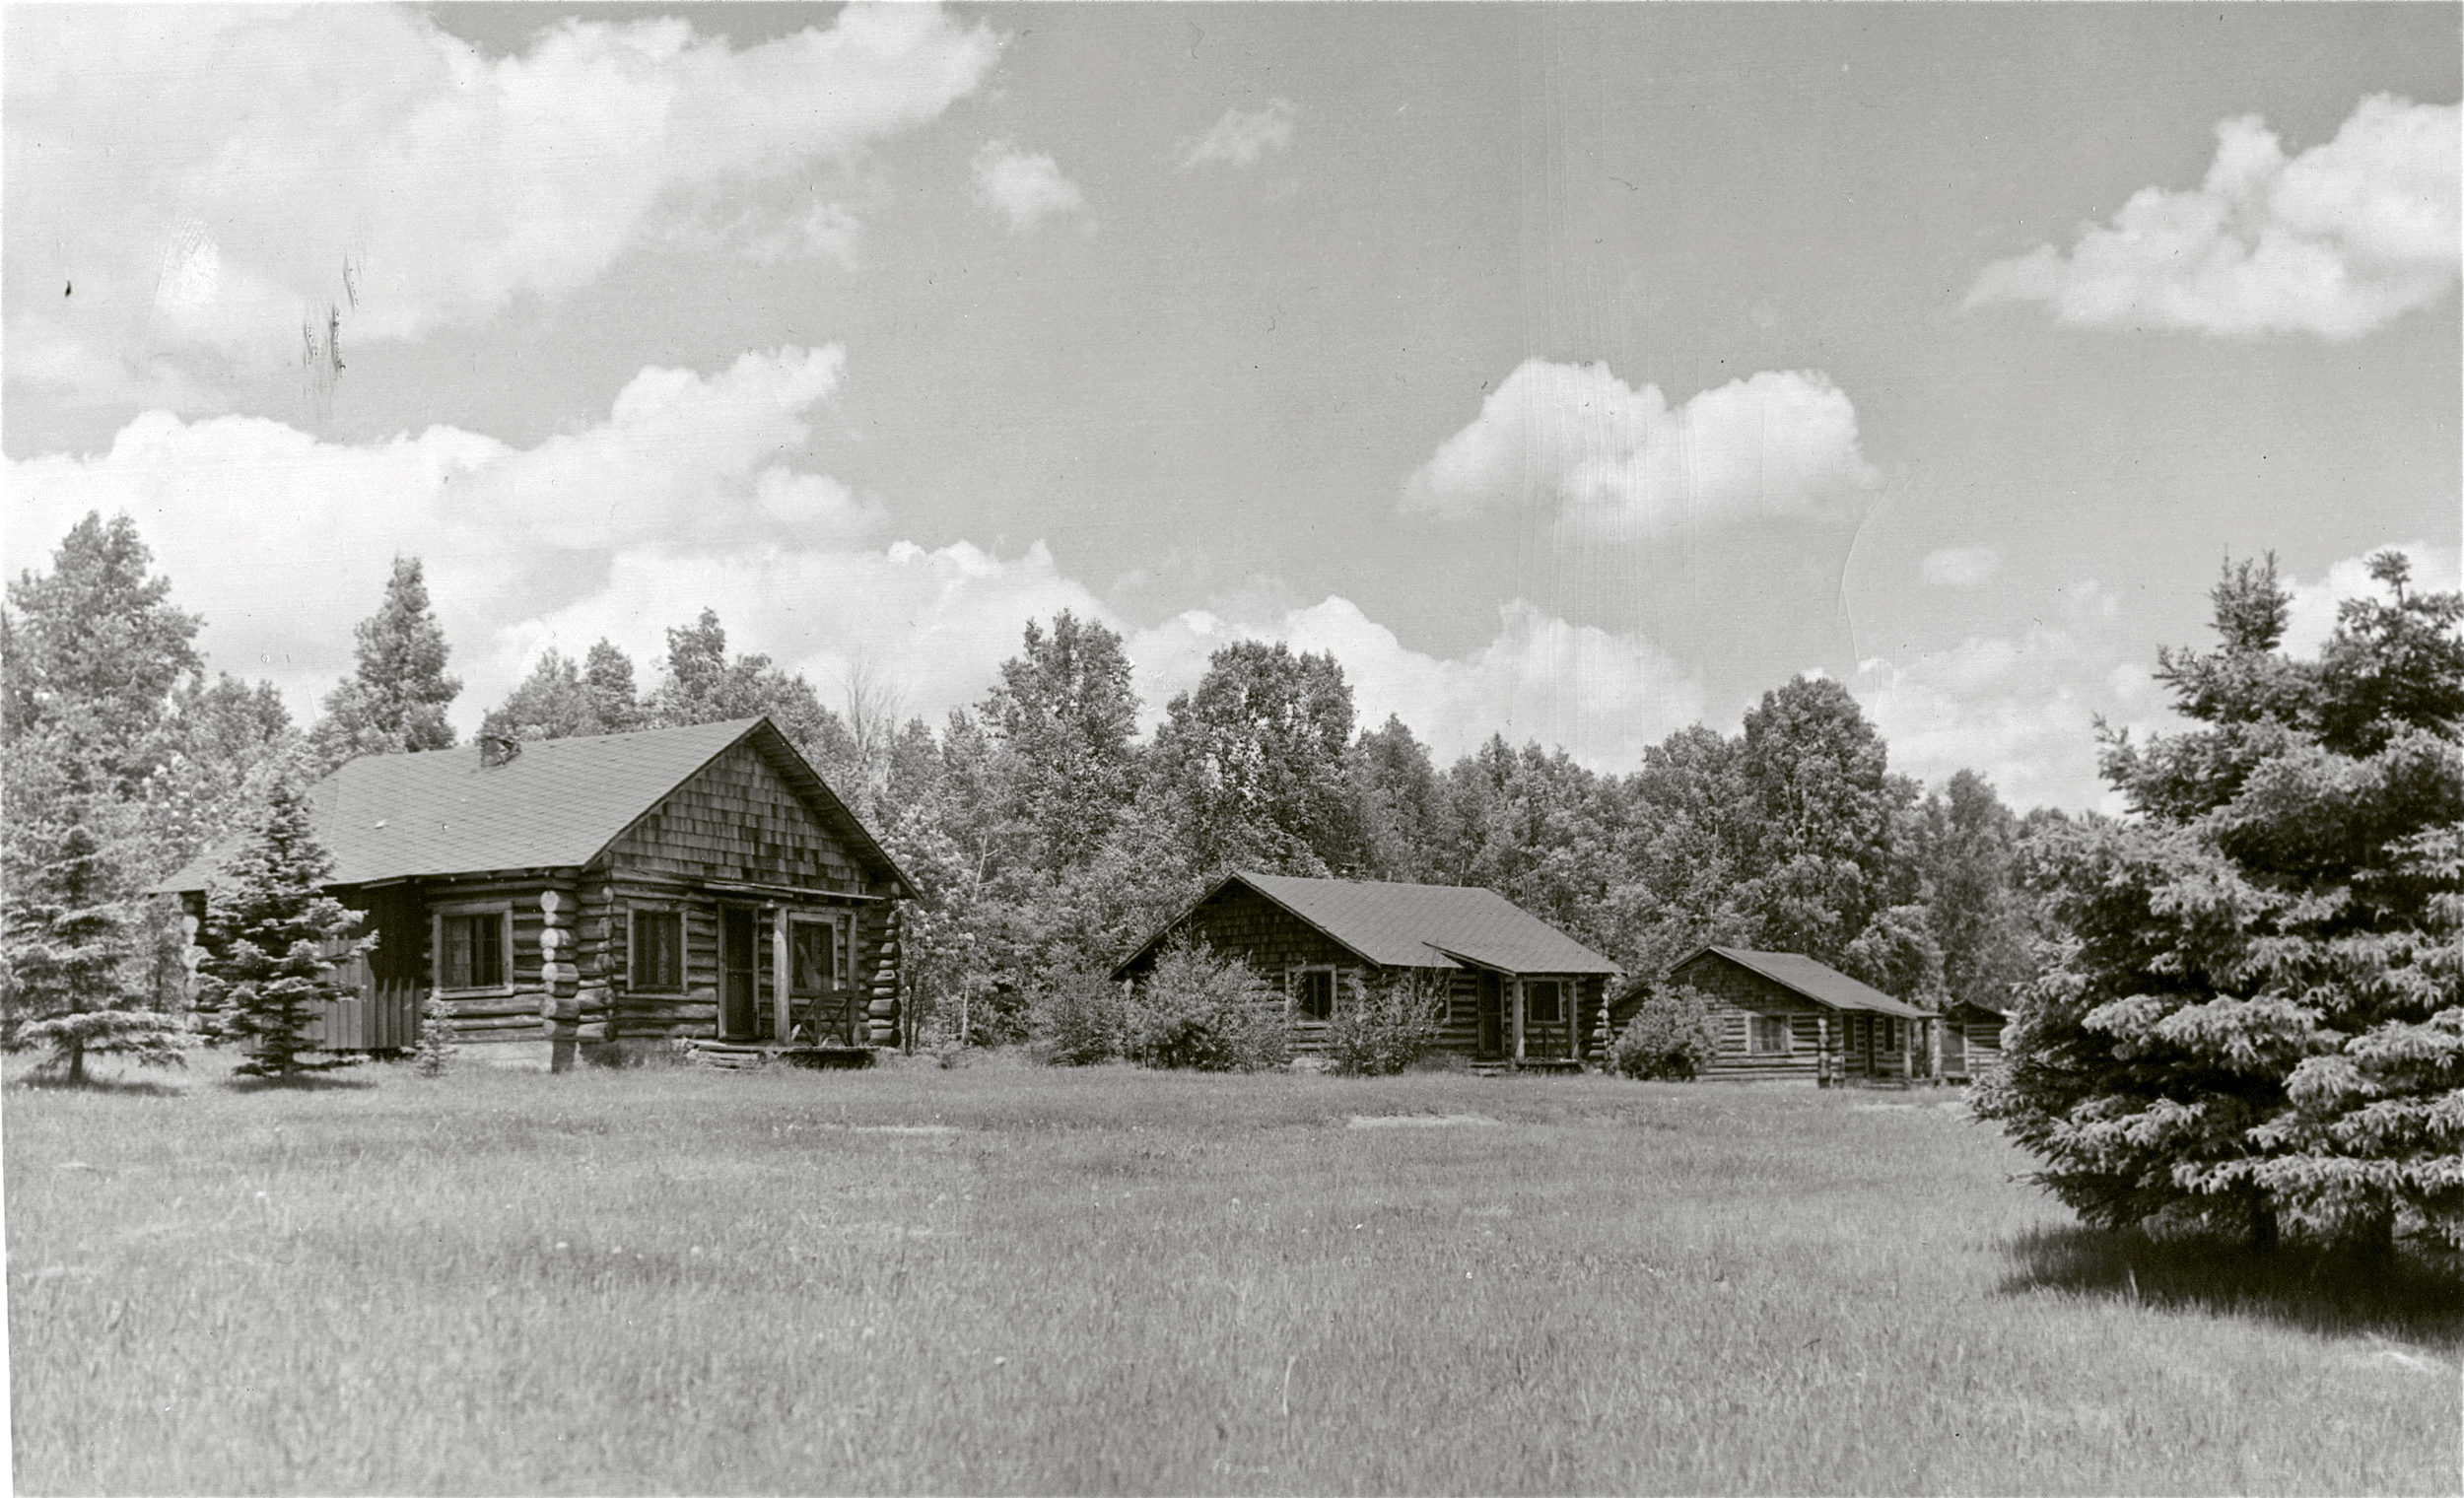 Cabins 7, 6, 5, and a glimpse of 4, circa 1955